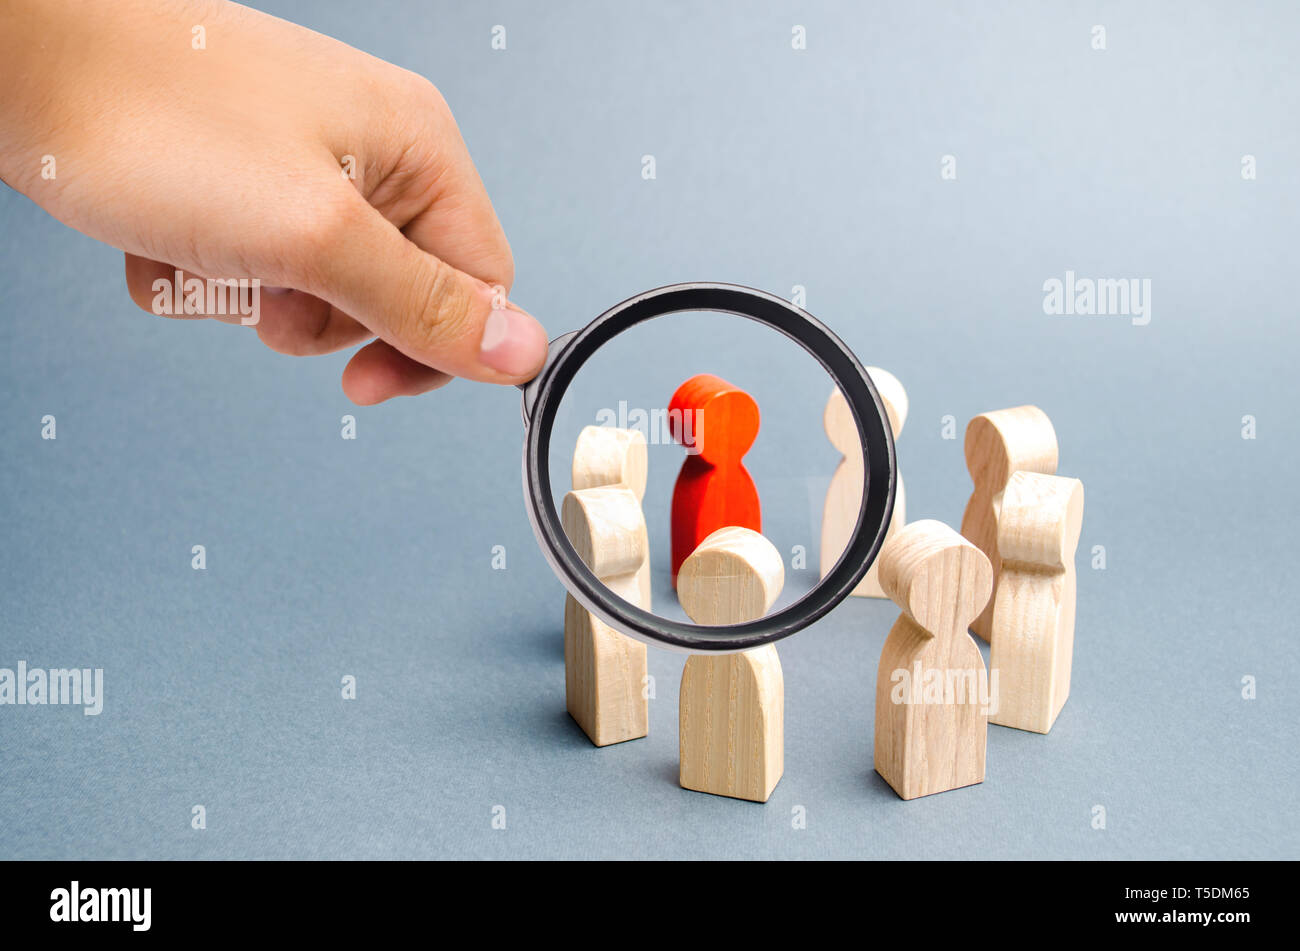 Magnifying glass is looking at the People stand in a circle on a gray background. Communication. Business team, teamwork, team spirit. Wooden figures  - Stock Image